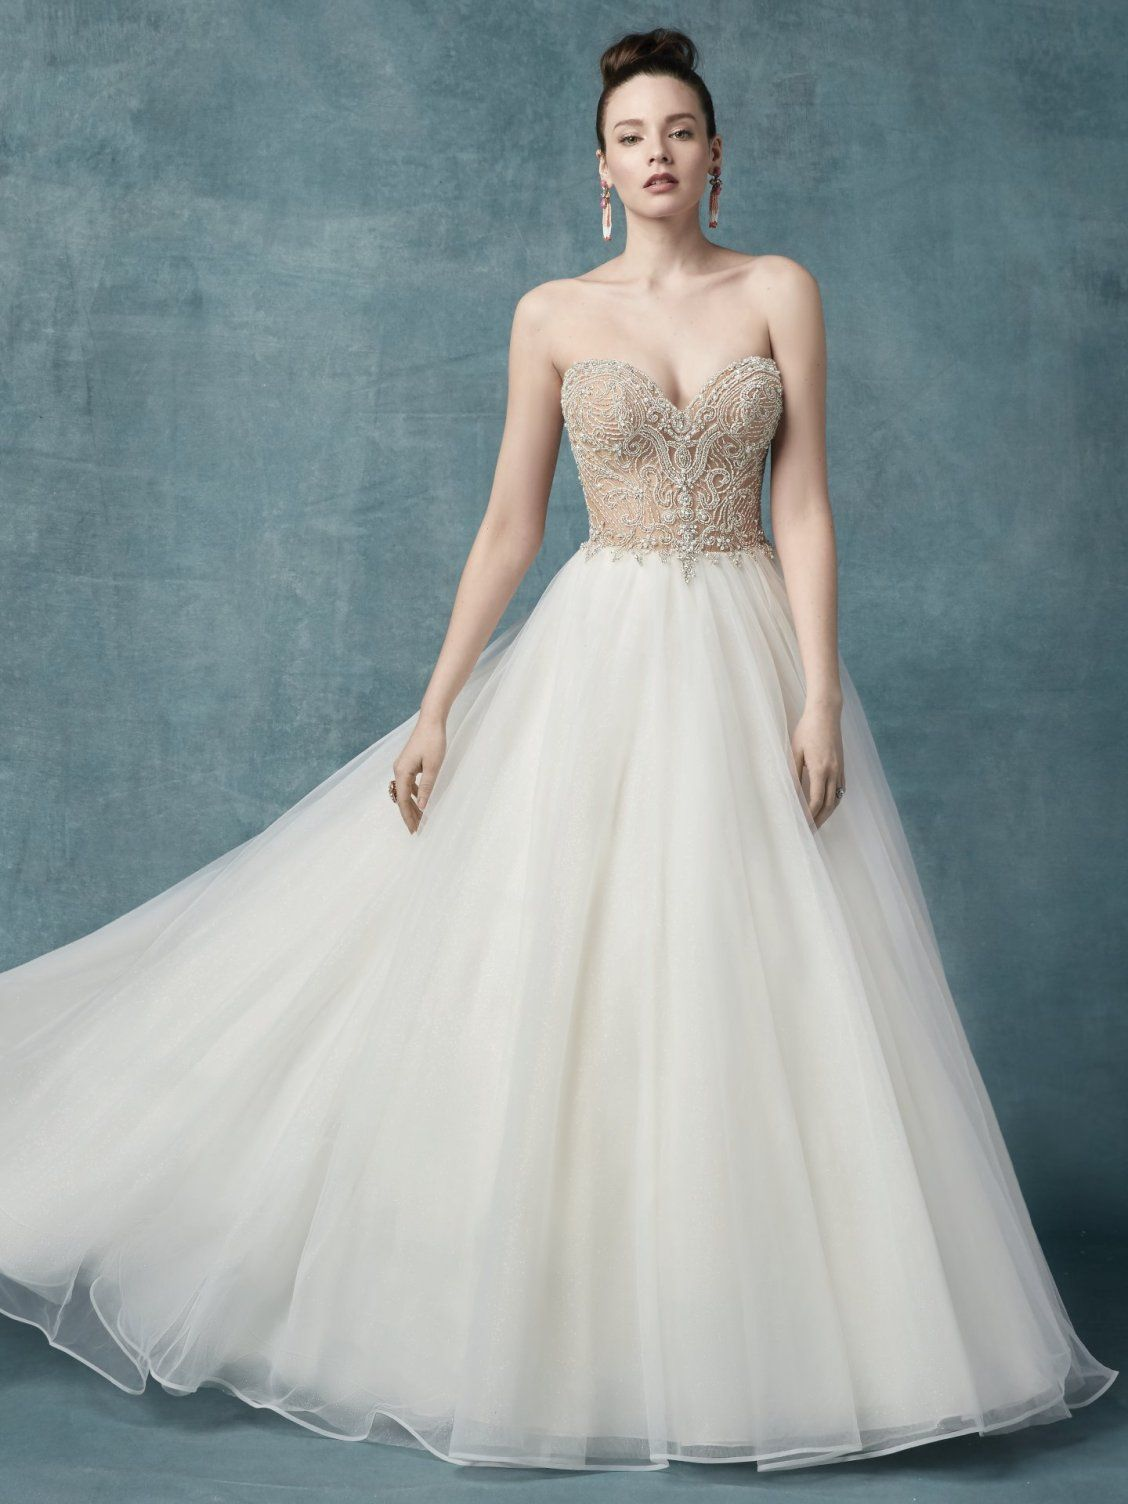 Zabella By Maggie Sottero Wedding Dresses Expensive Wedding Dress Sottero Wedding Dress Ball Gowns Wedding